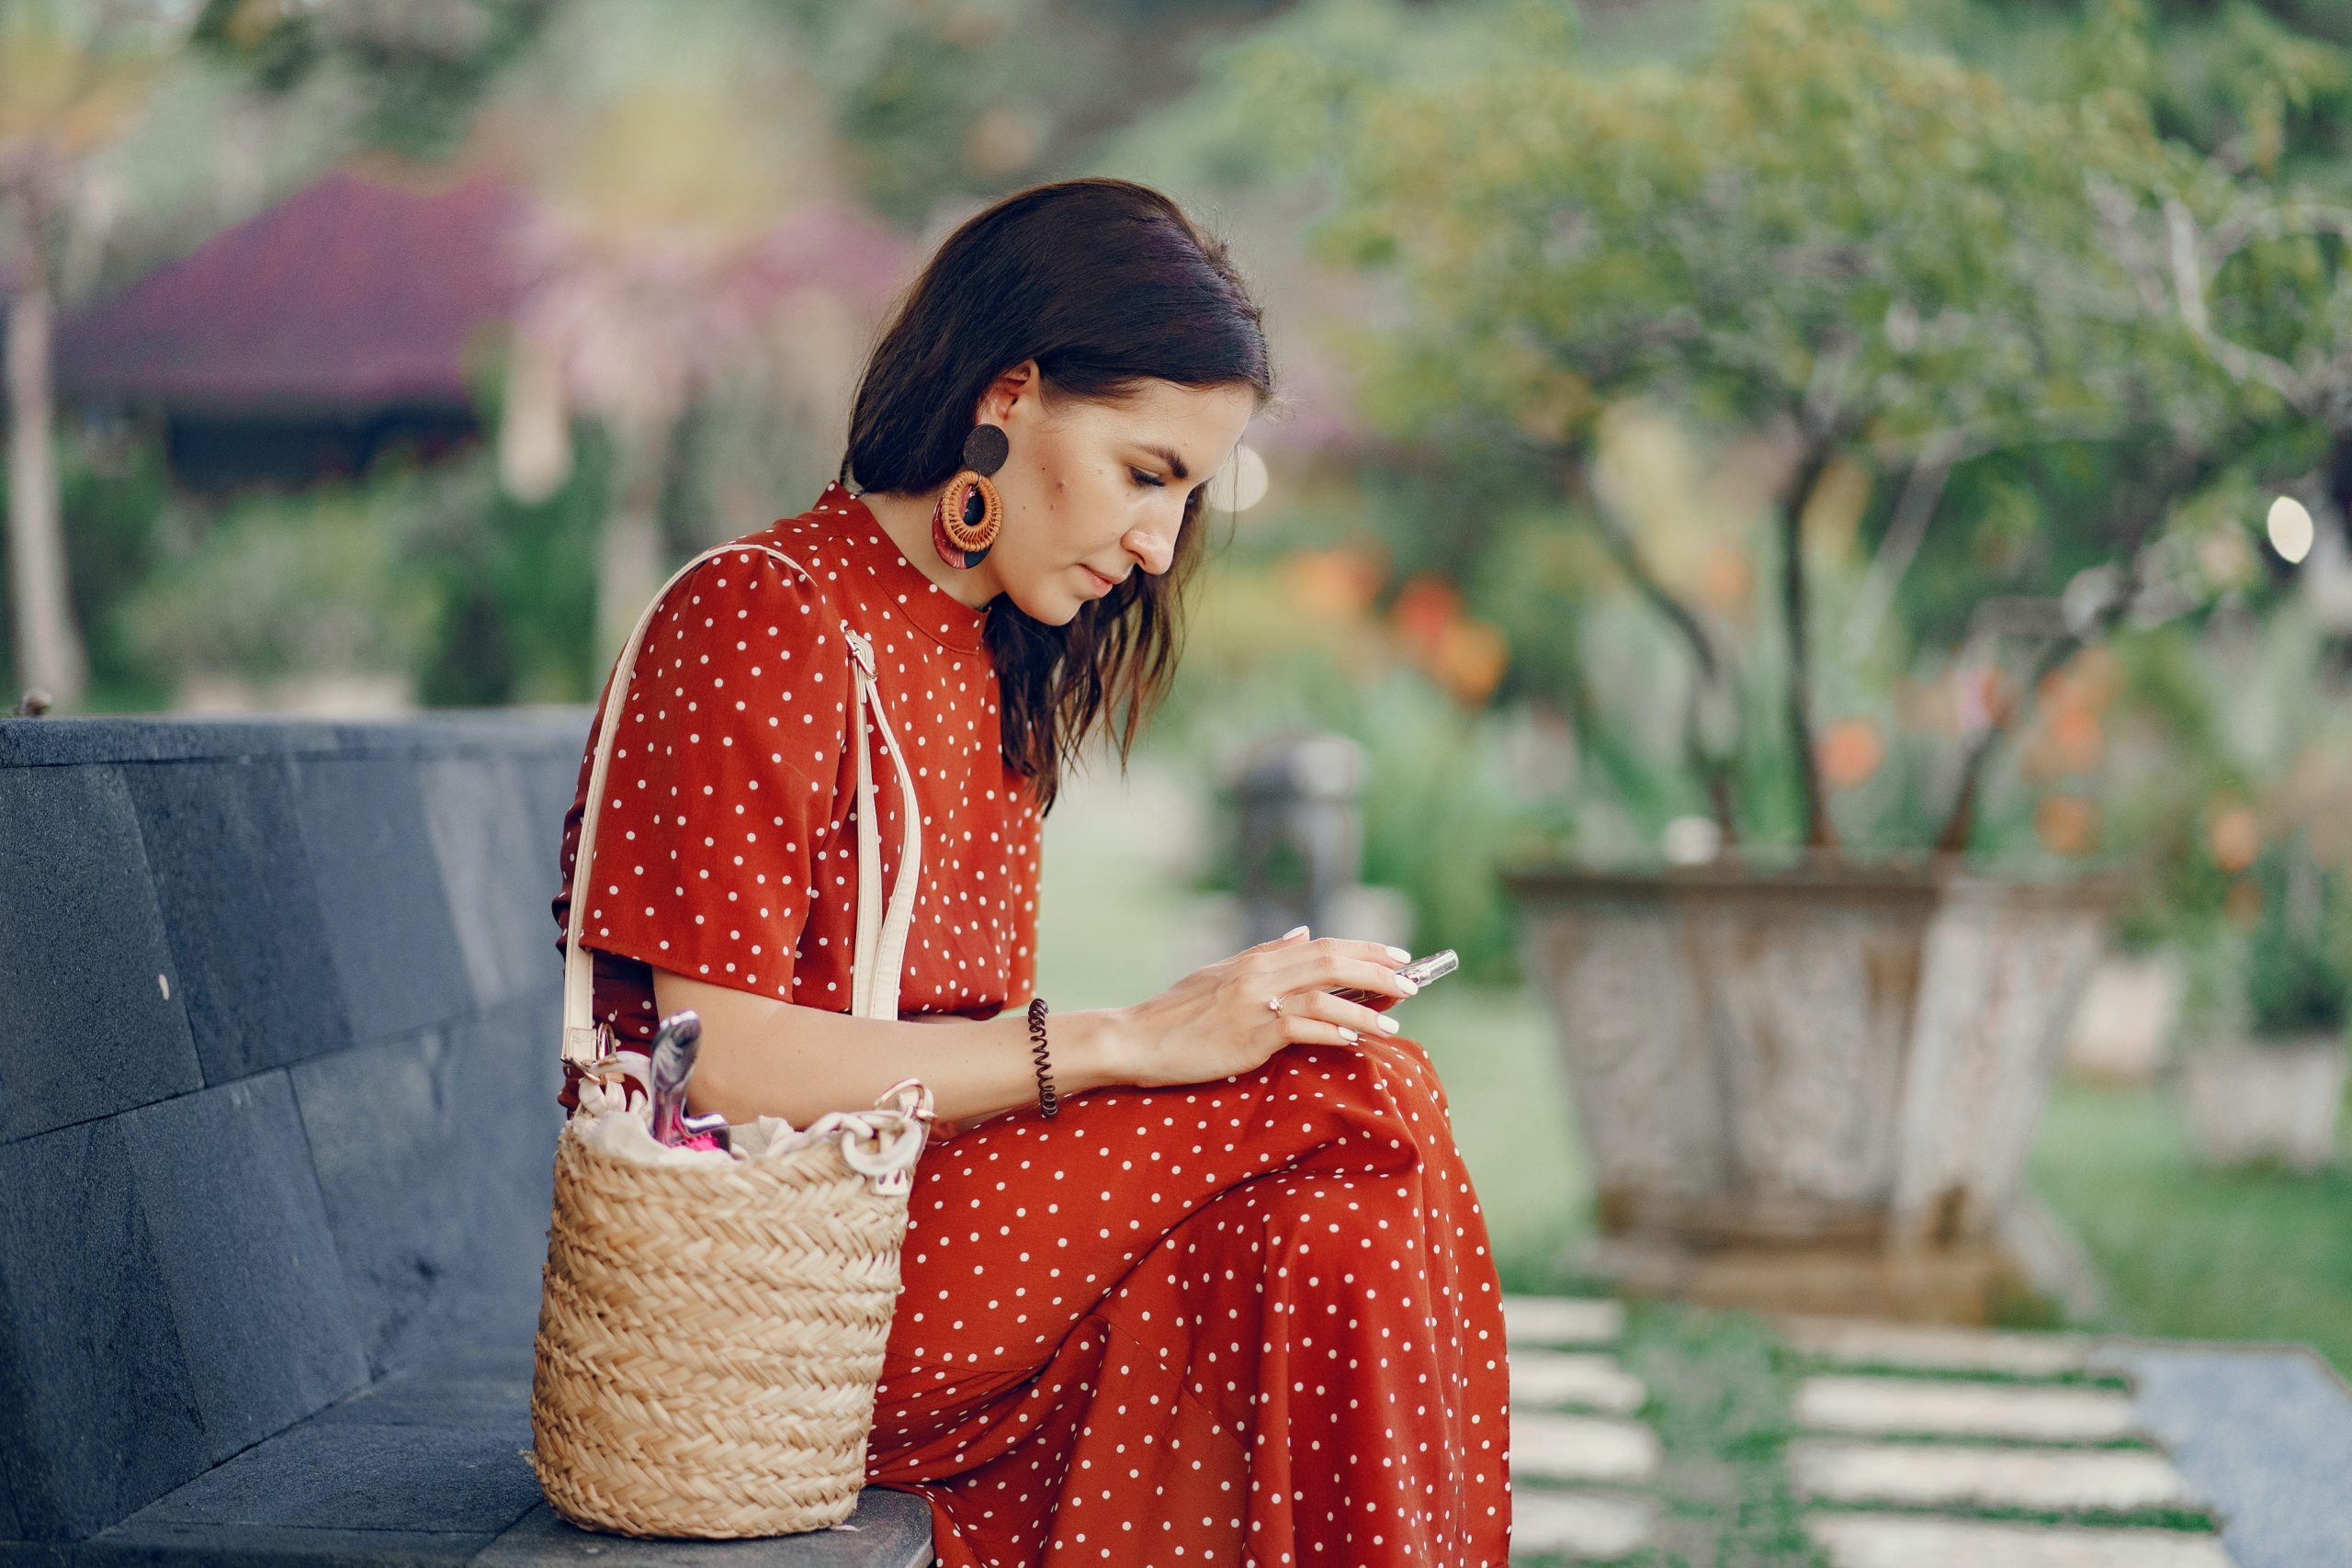 calm-woman-in-red-dress-using-smartphone-on-bench-4172870